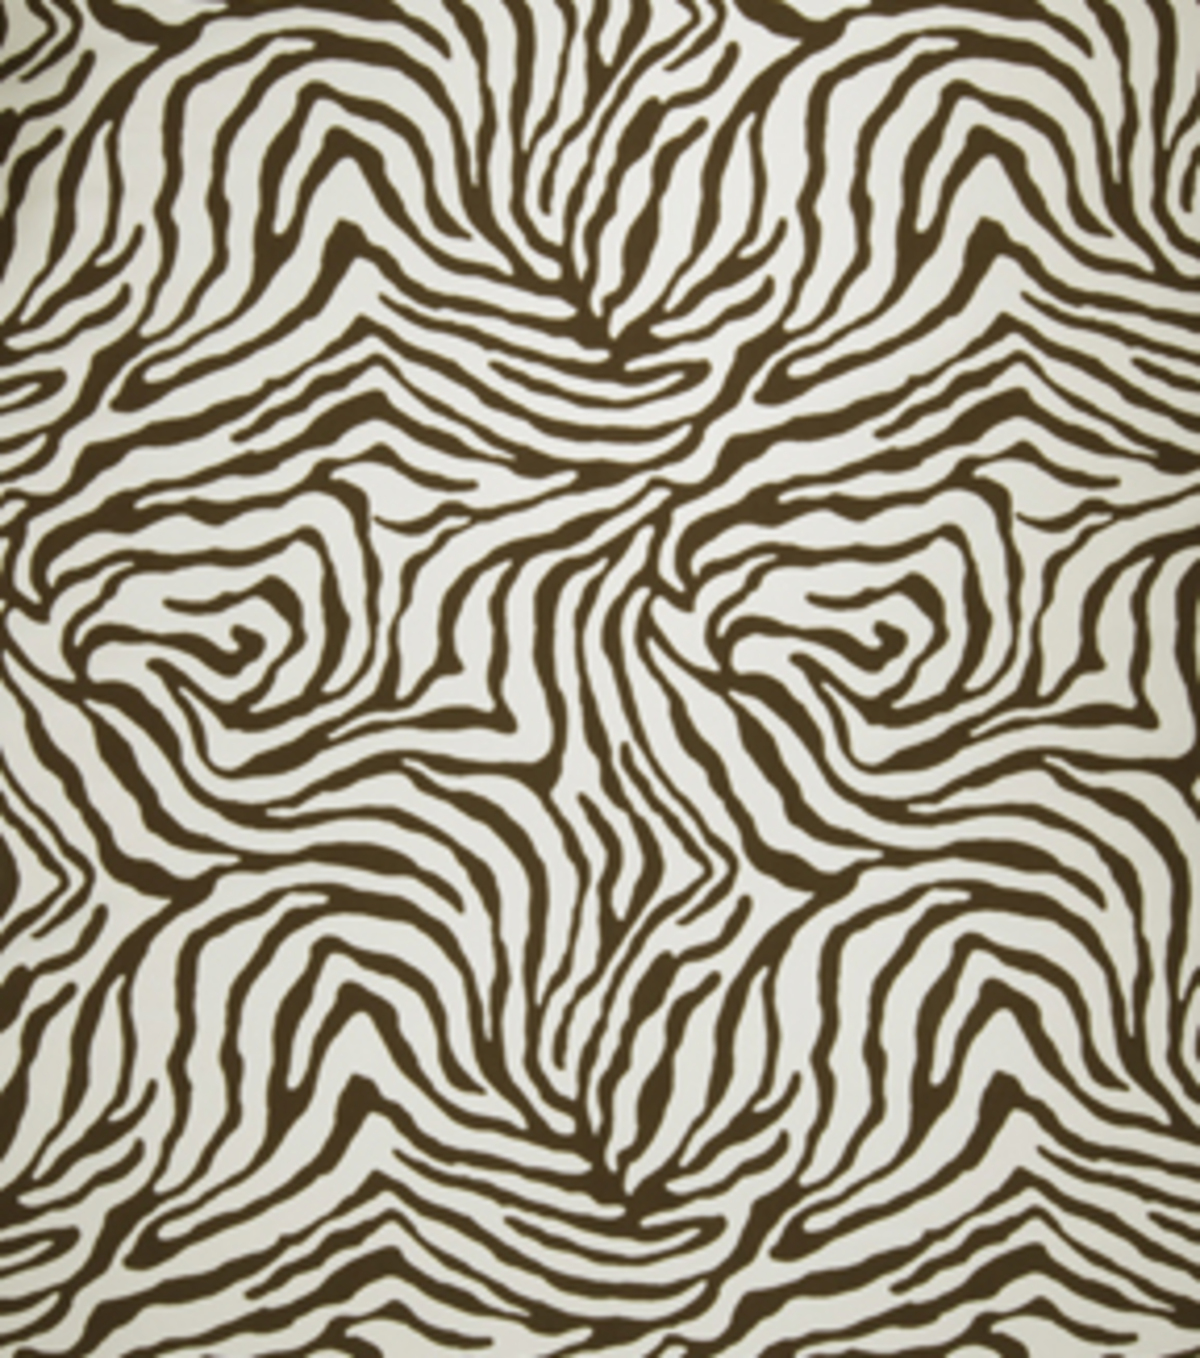 Home Decor 8\u0022x8\u0022 Fabric Swatch-Eaton Square Zebra Crossing-Pebble  Animal